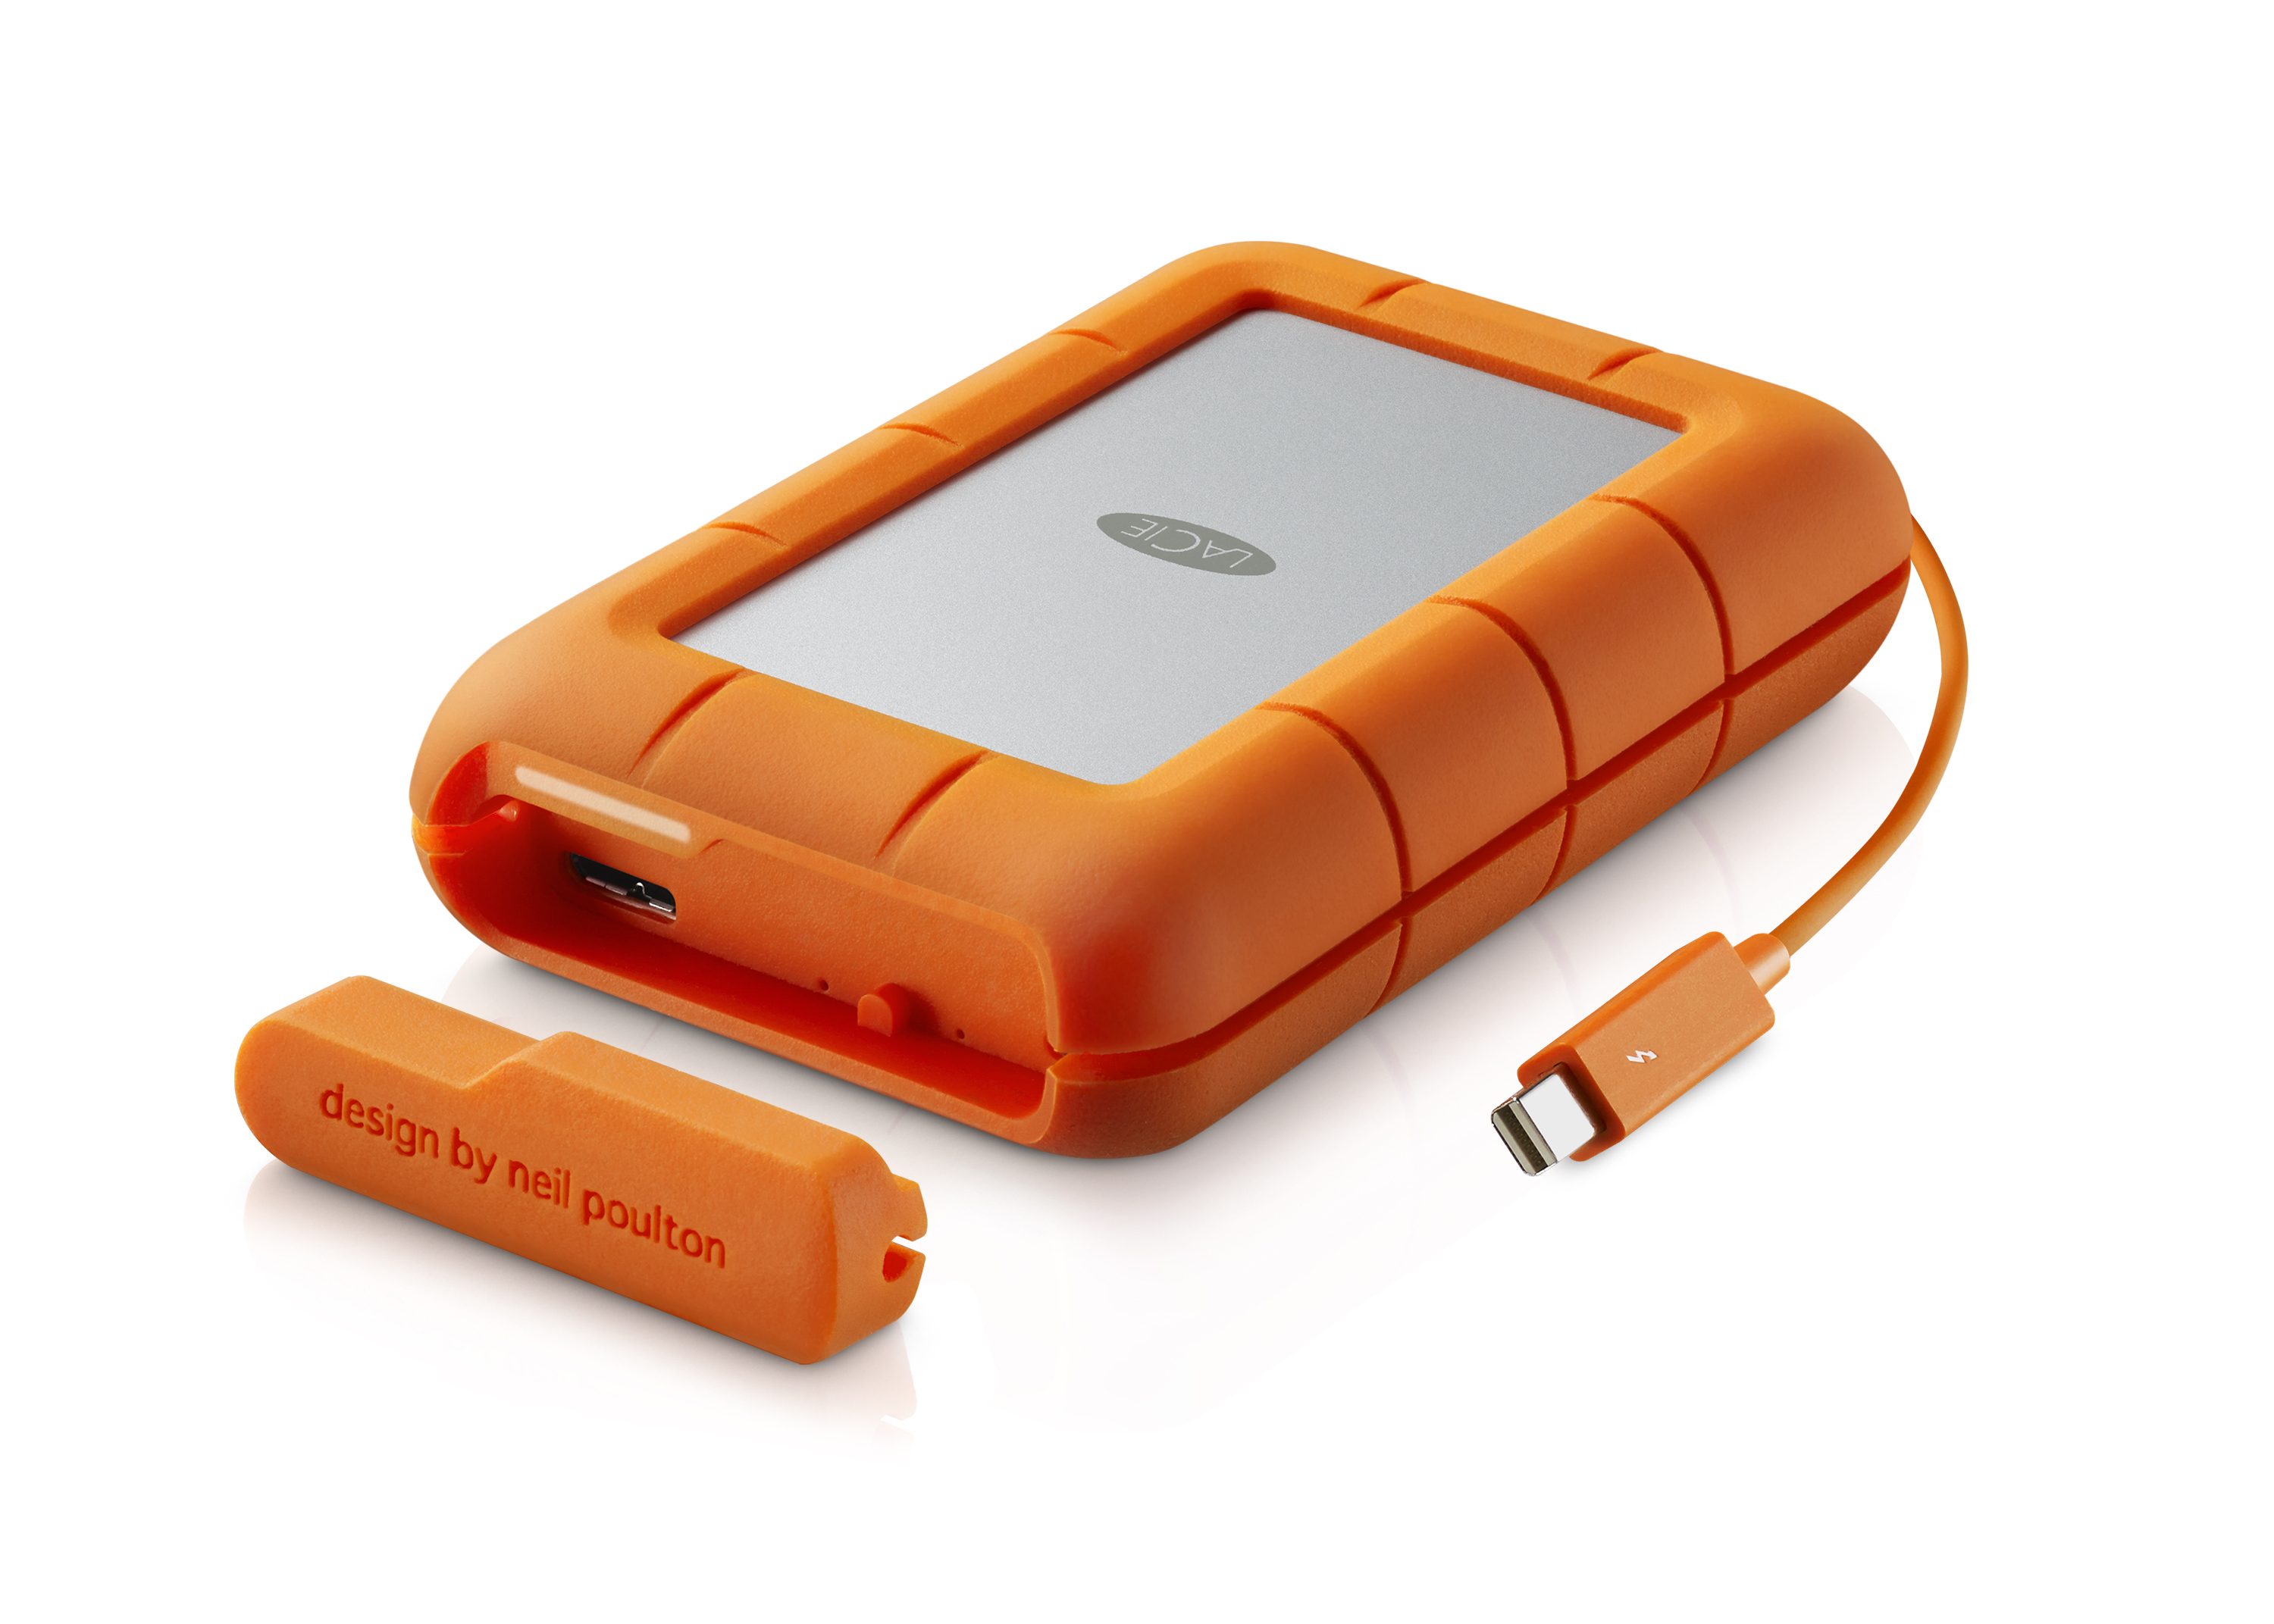 product media rugged thunderbolt drives raid lacie ireland lacieruggedthunderbolt rug